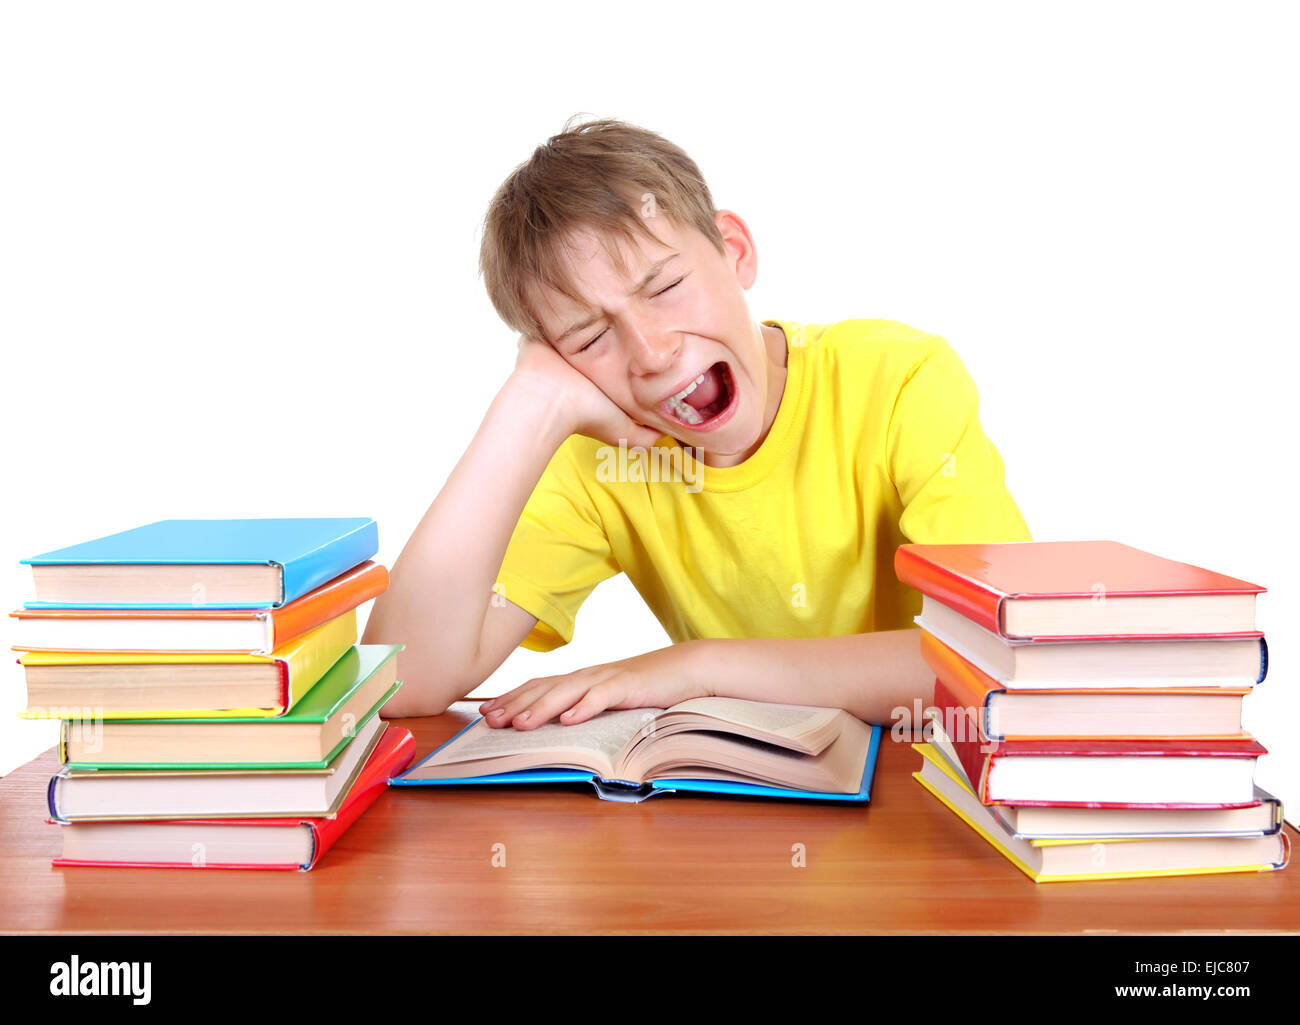 Tired Schoolboy yawning - Stock Image